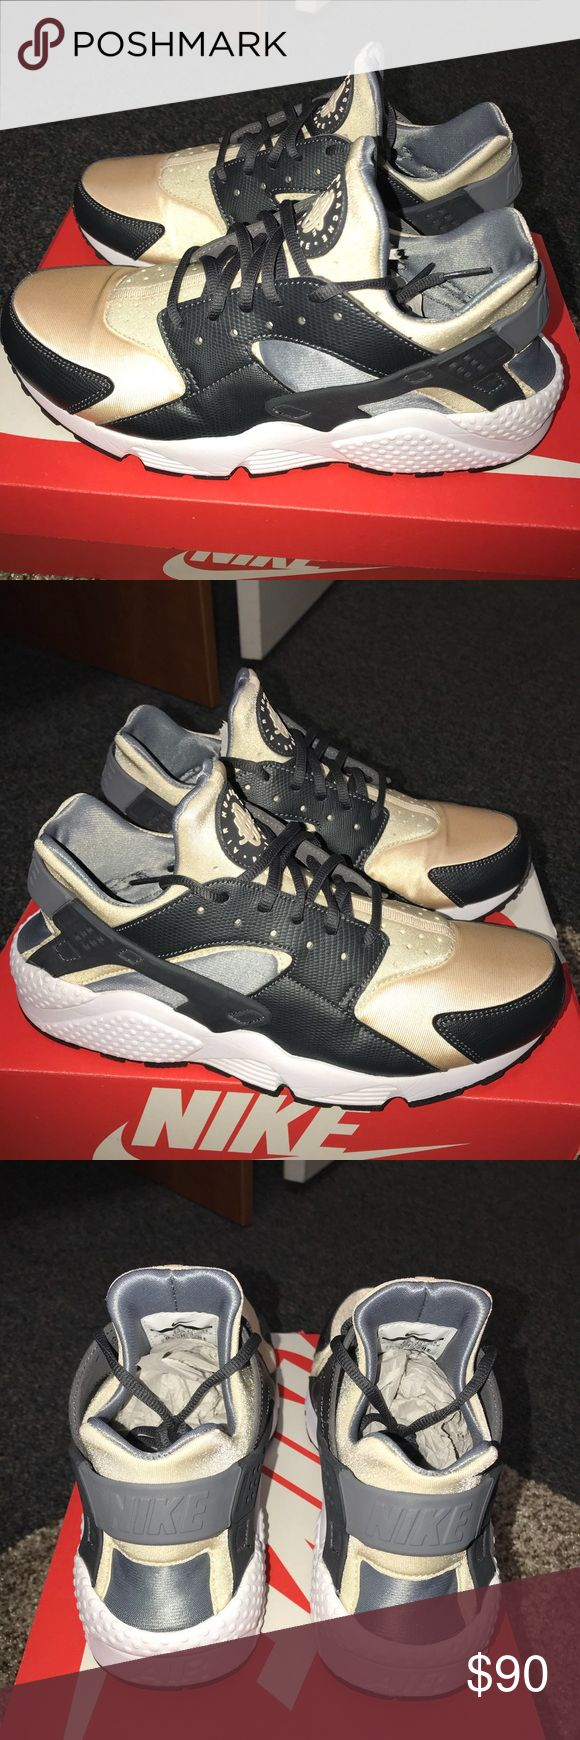 Nike Air Huarache Shoes SIZE: Men's 9.5, Women's 11  COLOR: Anthracite/Oatmeal-Cool Grey  Practically brand new. I work at Hibbett Sports and bought these shoes brand new and ONLY WORE THEM TWICE. No scuffs, creases, or dirt marks on the shoes. Nike Shoes http://feedproxy.google.com/fashionShoes22